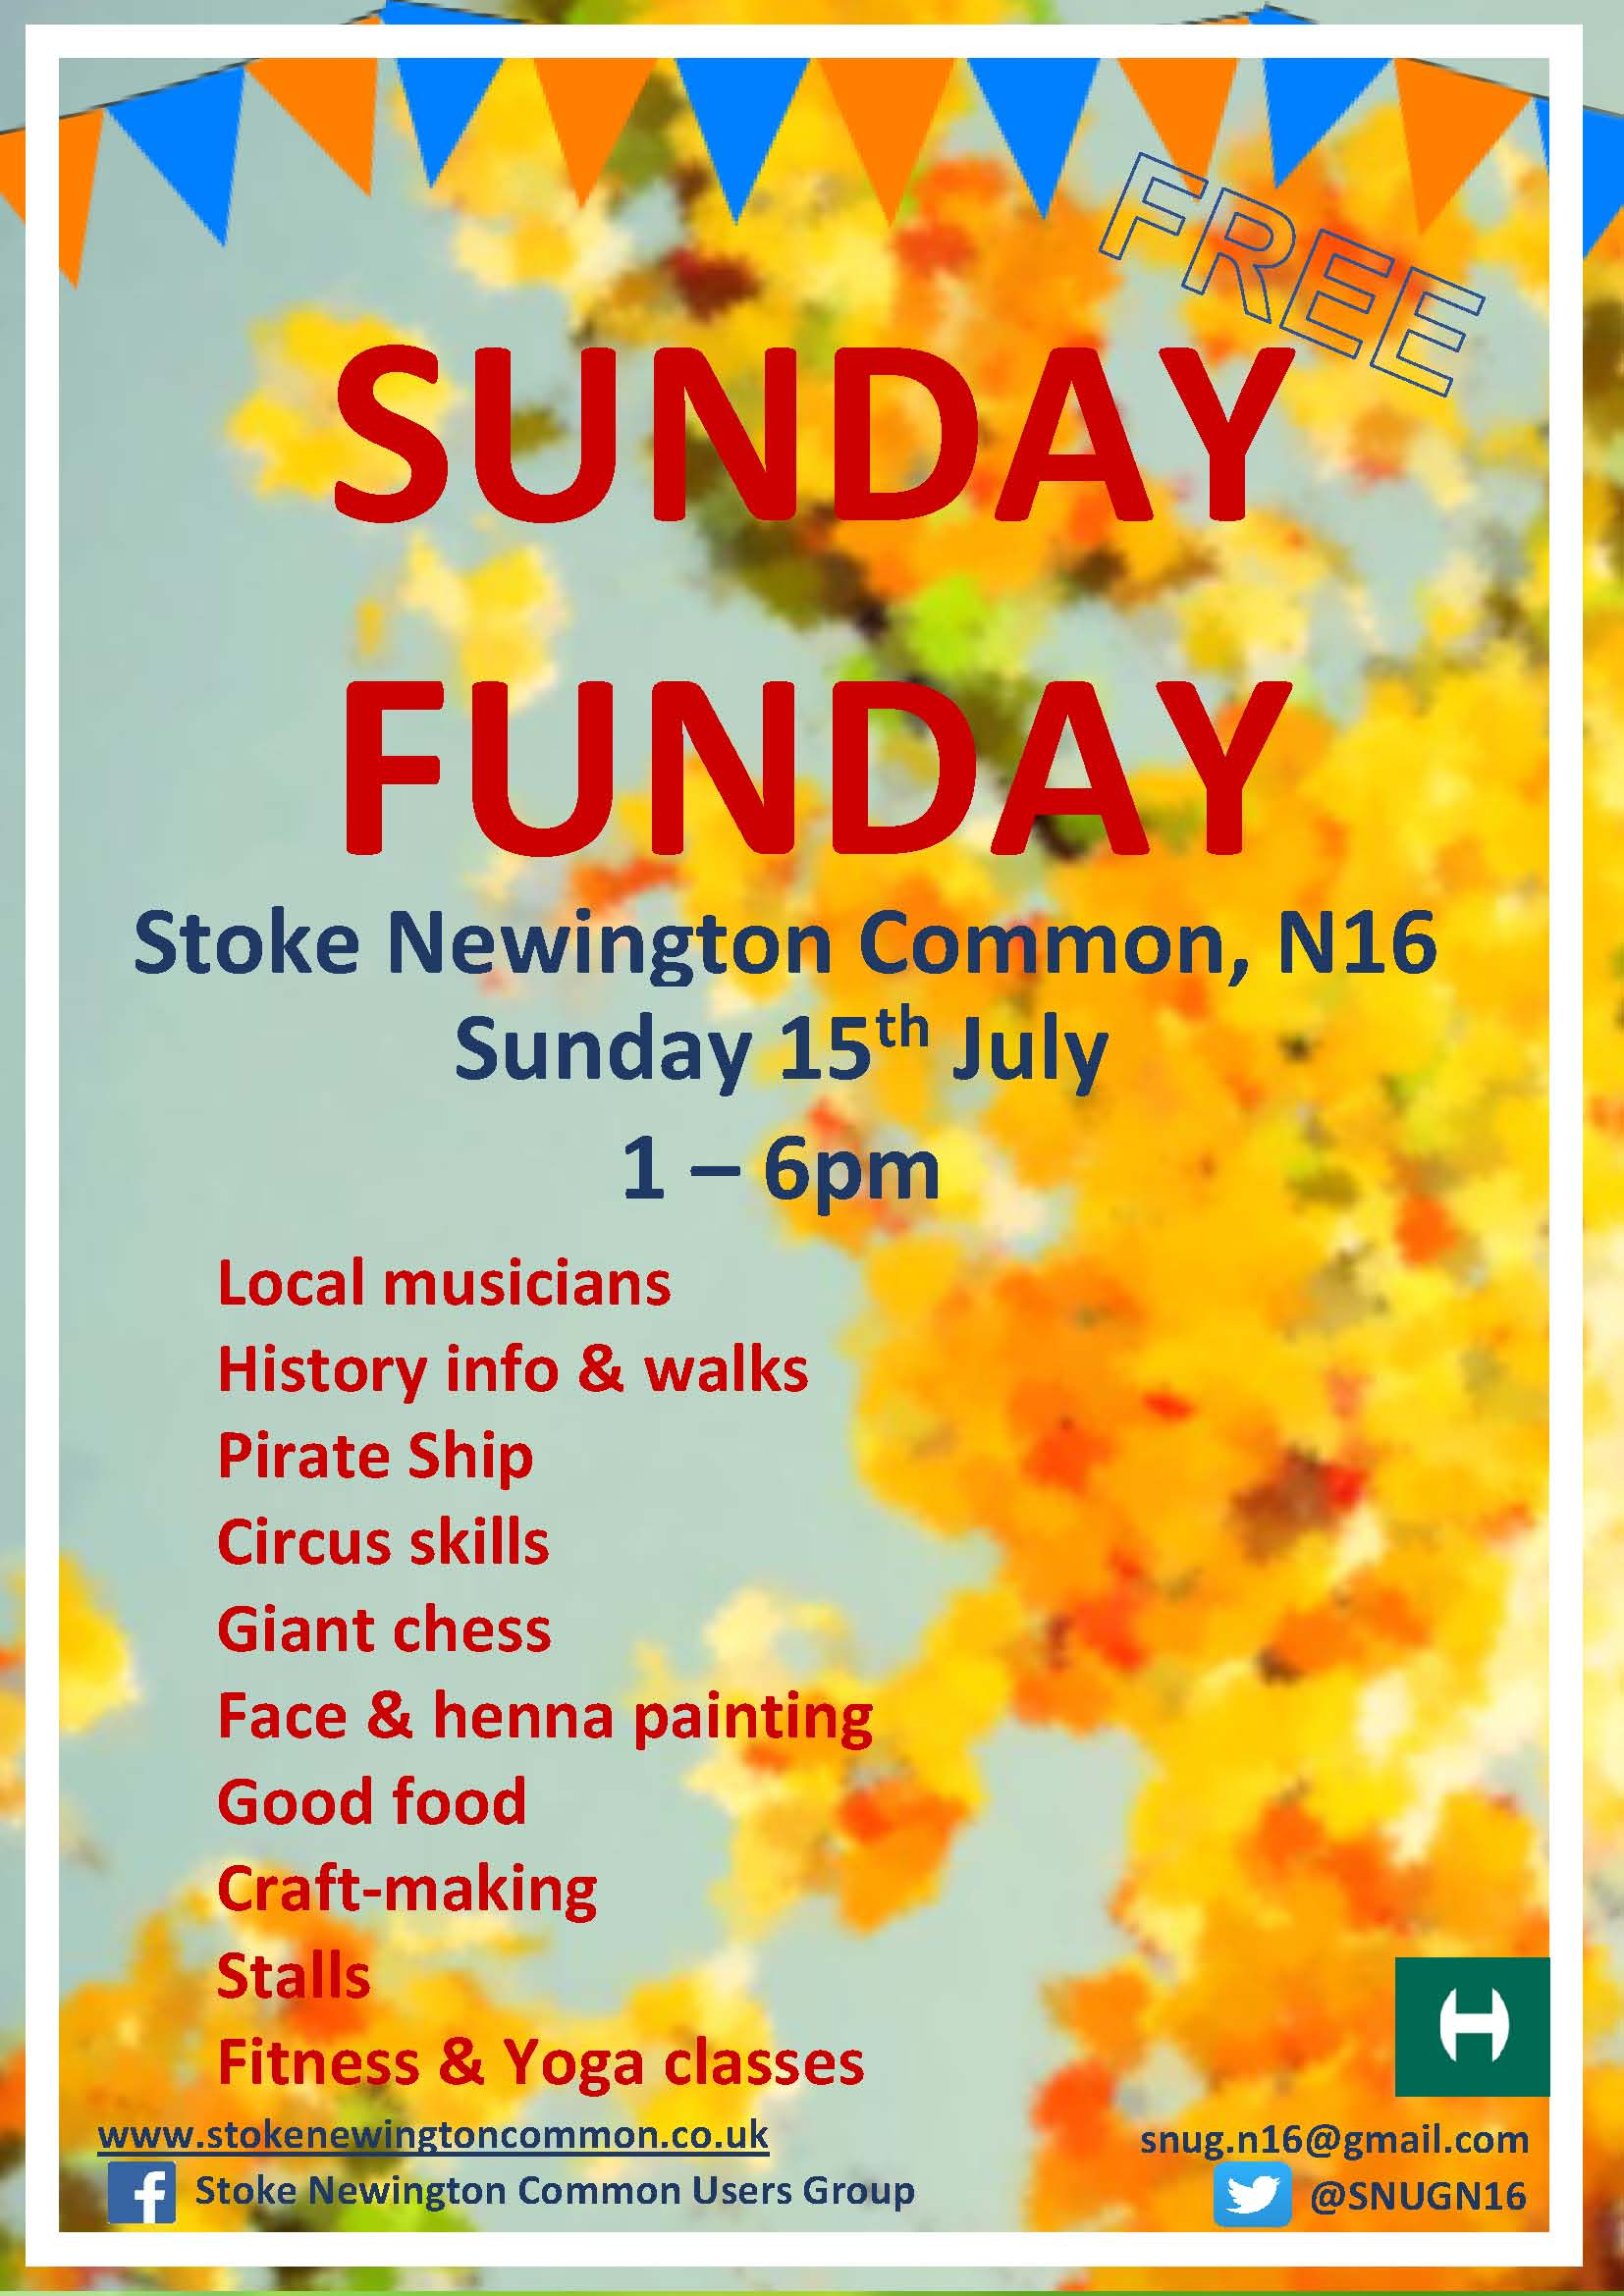 Snug funday poster July 2018